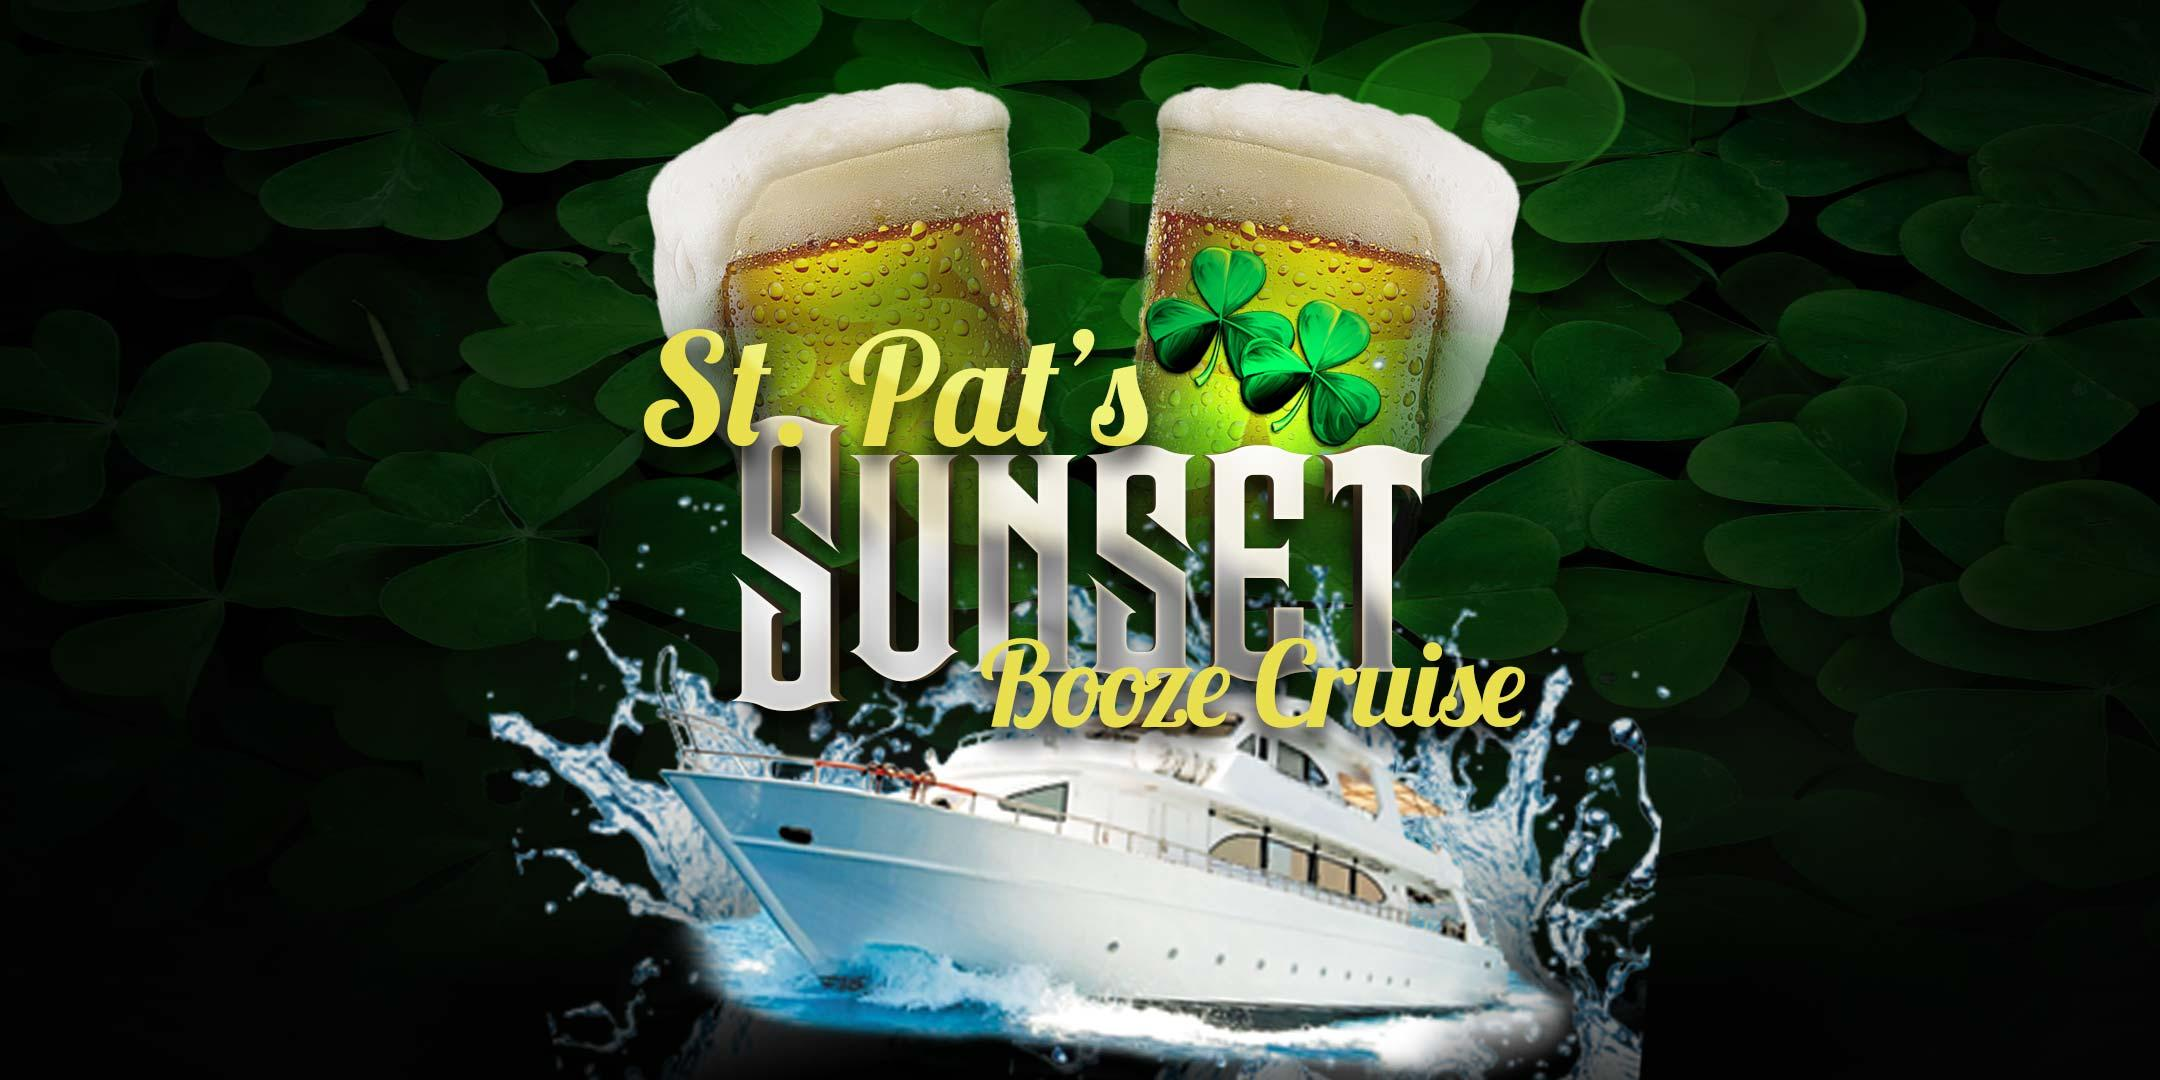 Yacht Party Chicago's St. Pat's Sunset Booze Cruise! (6pm)